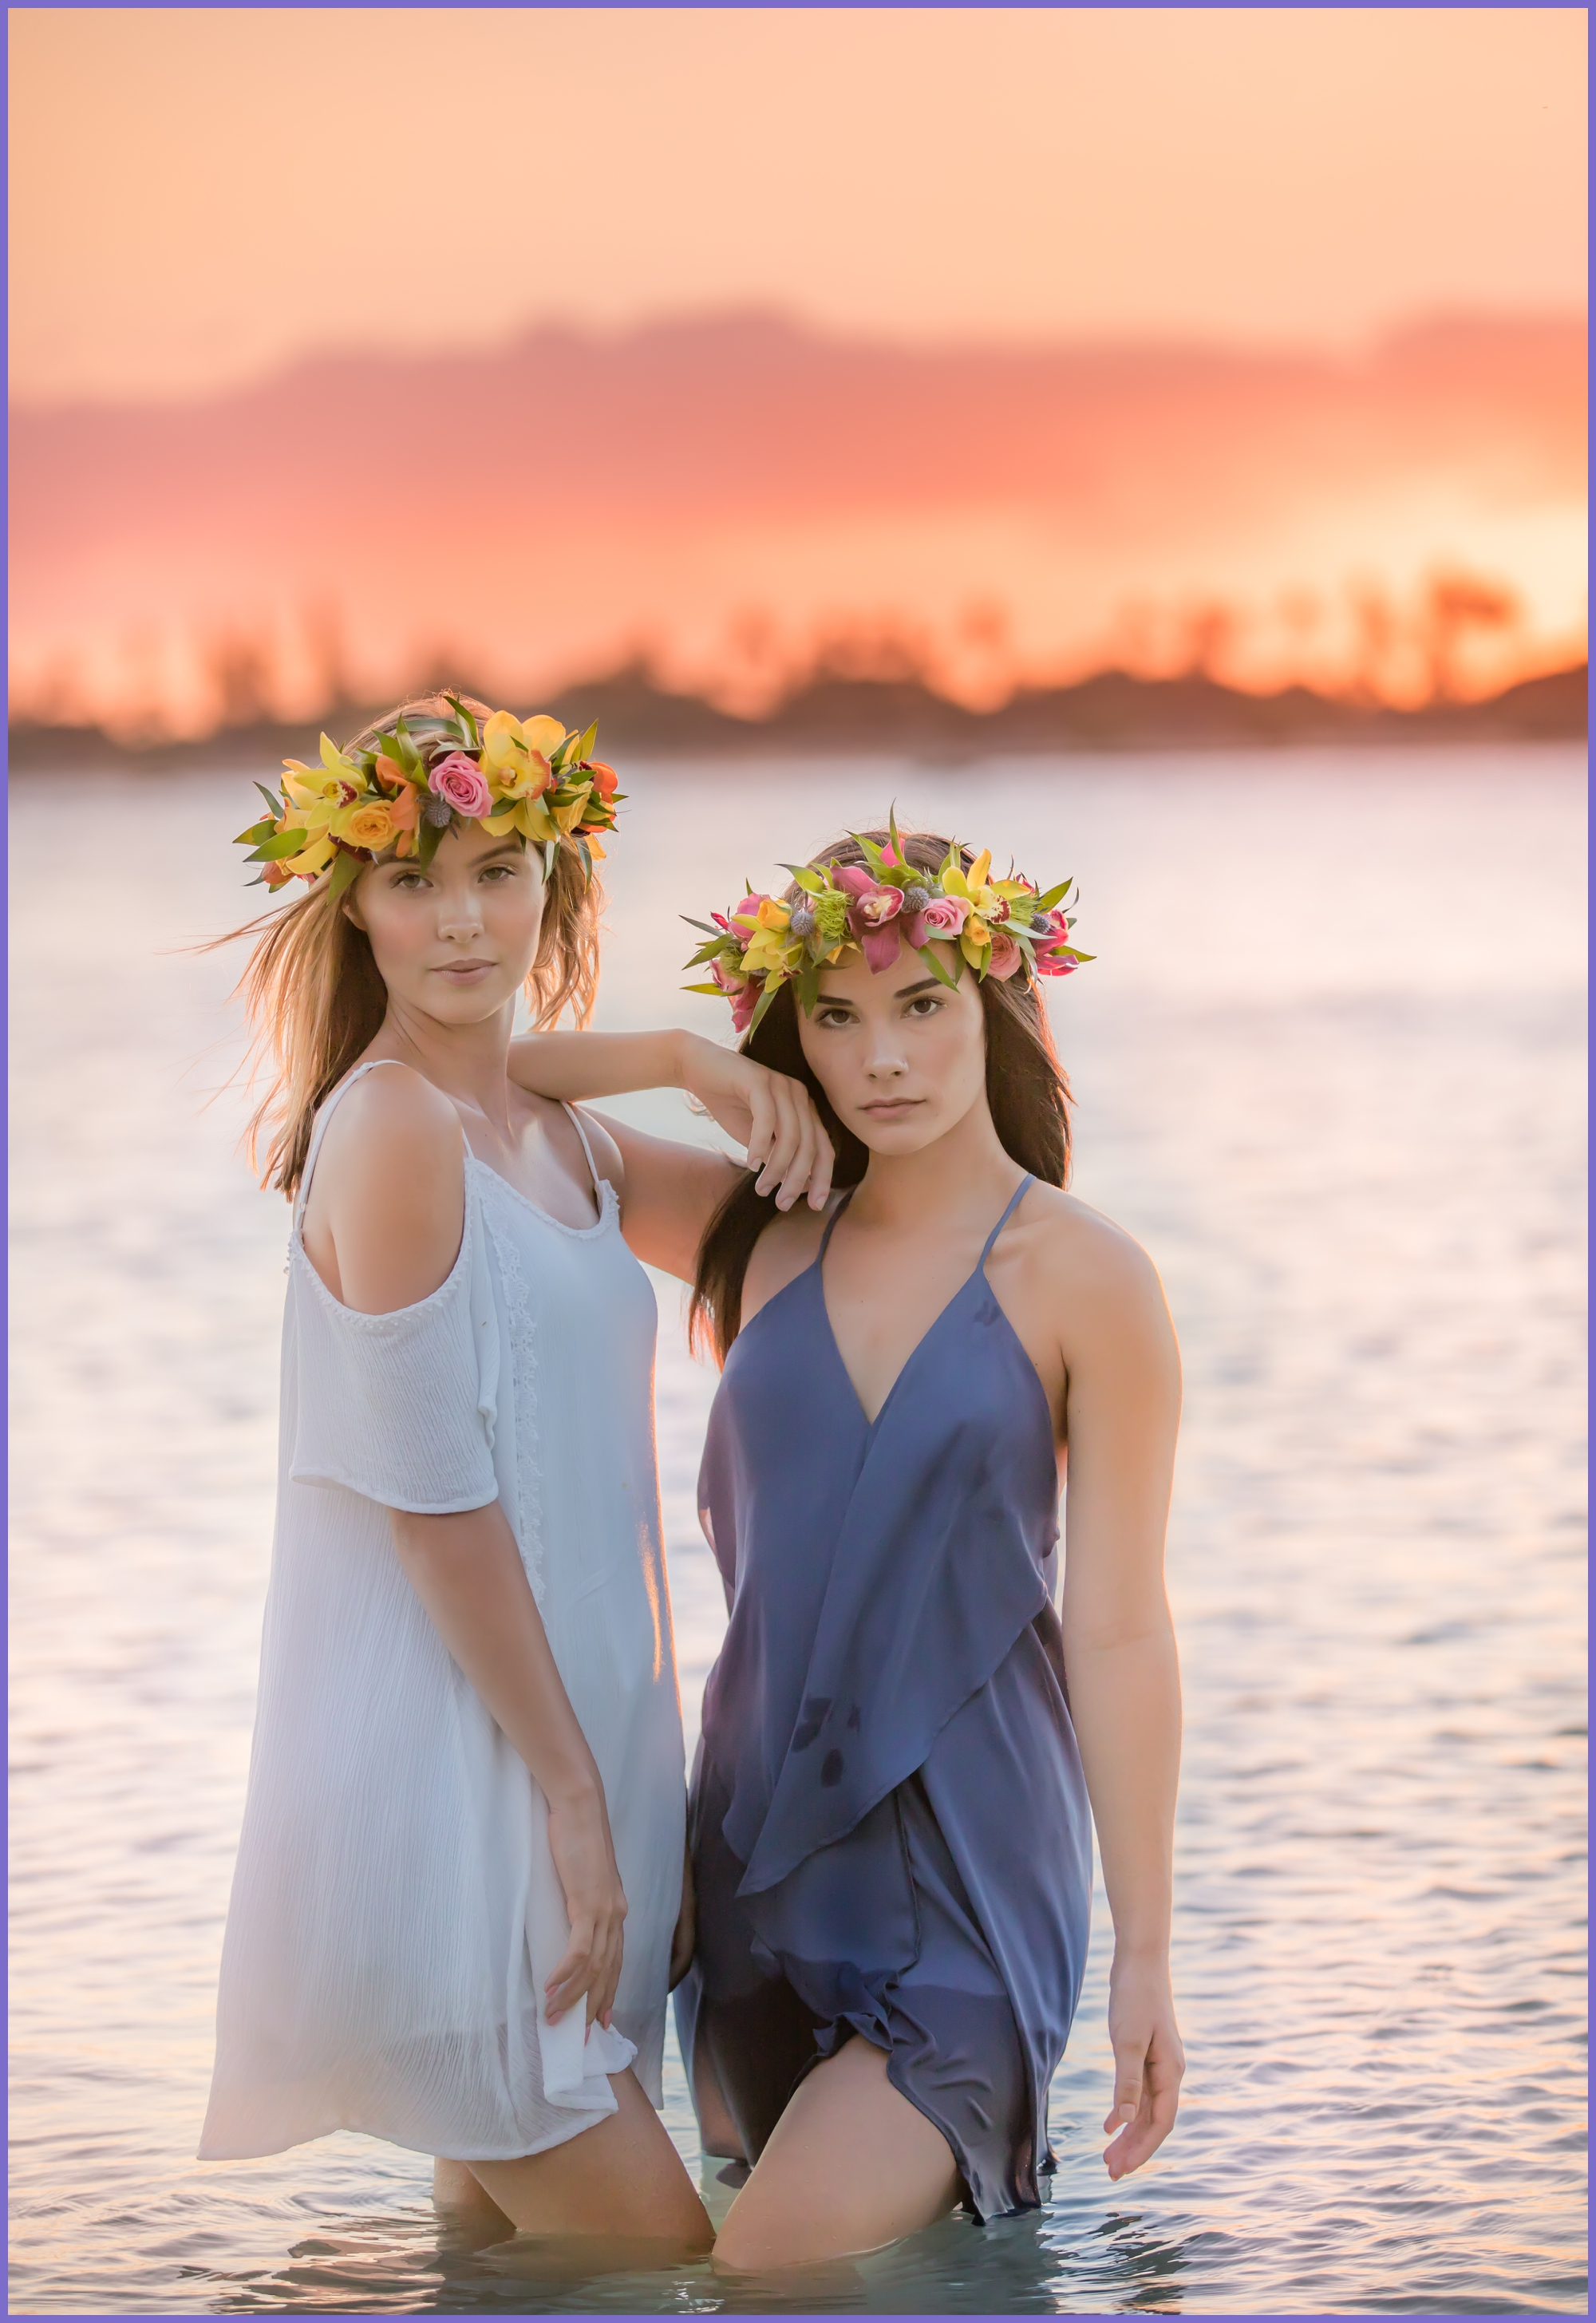 Models with haku flower crowns - oahu glamour photographer - ketino photography